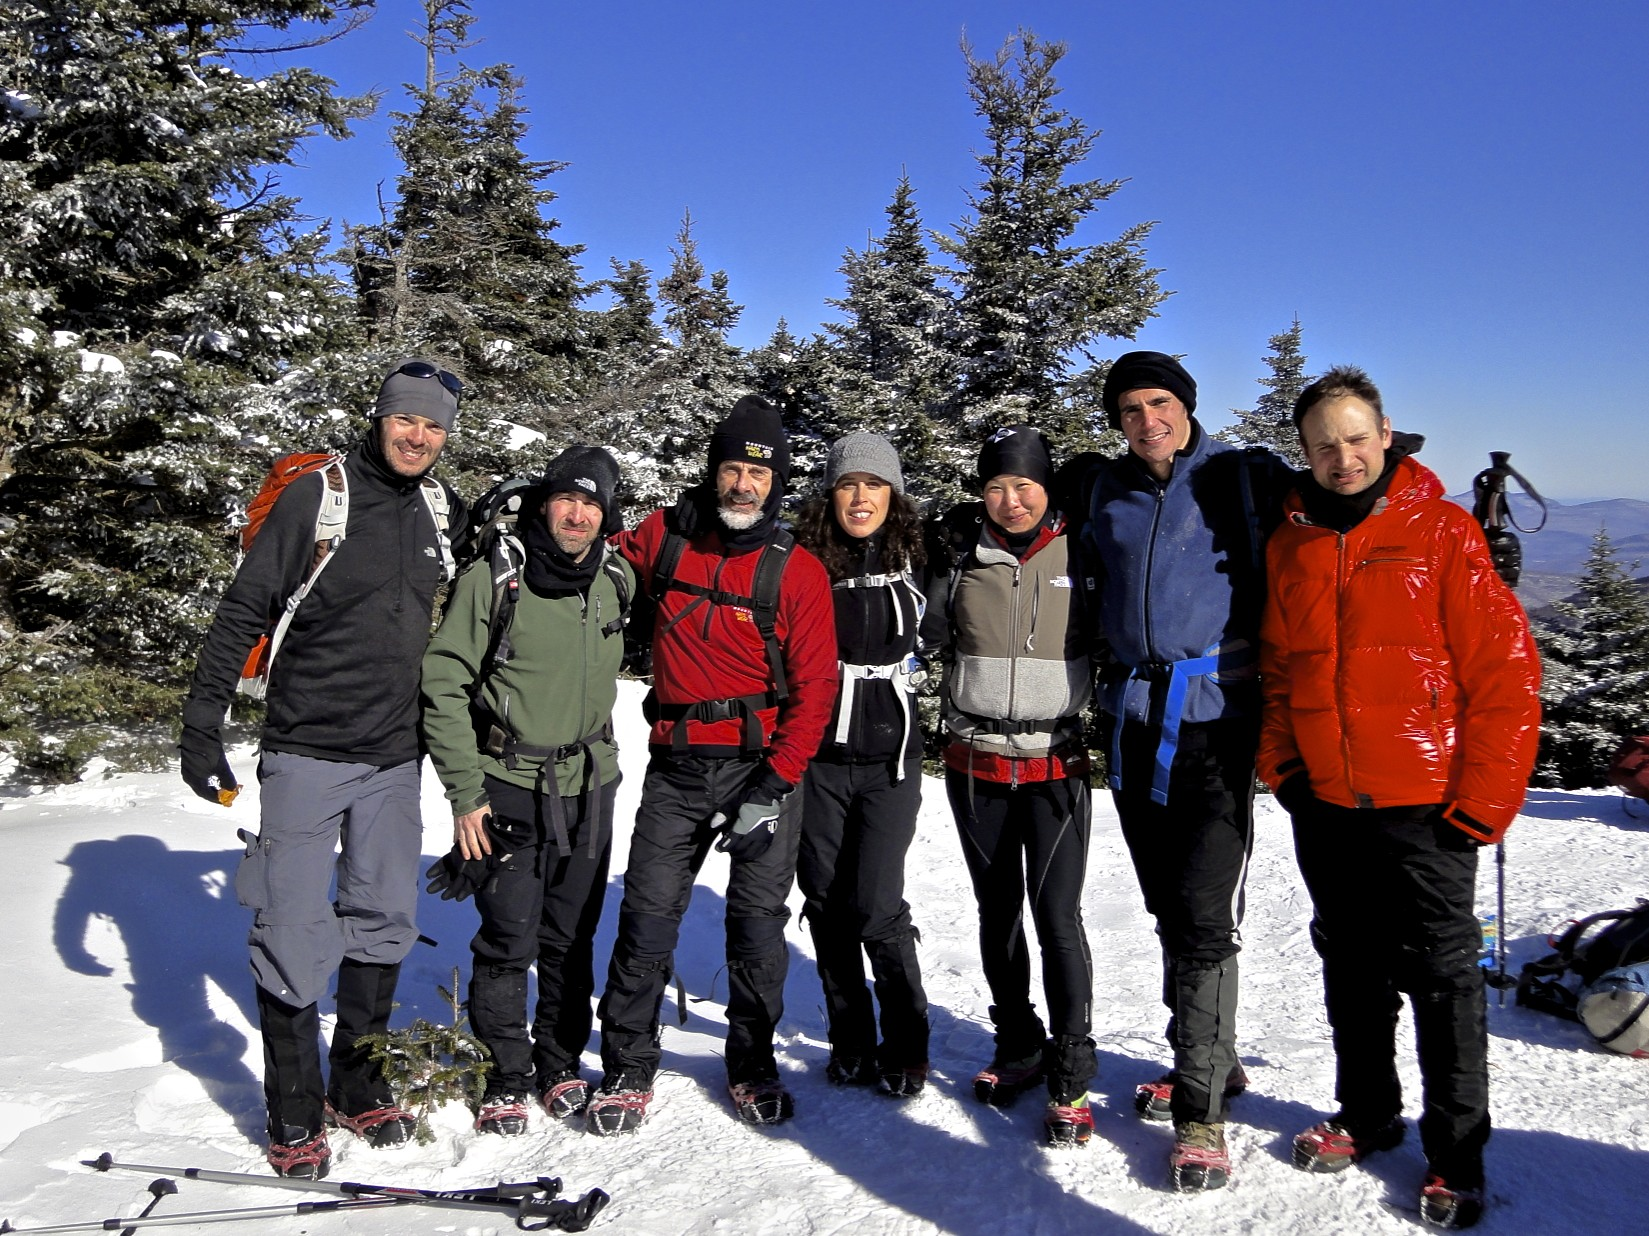 Everyone in their microspikes at the 203 Catskills Winter Adventure.